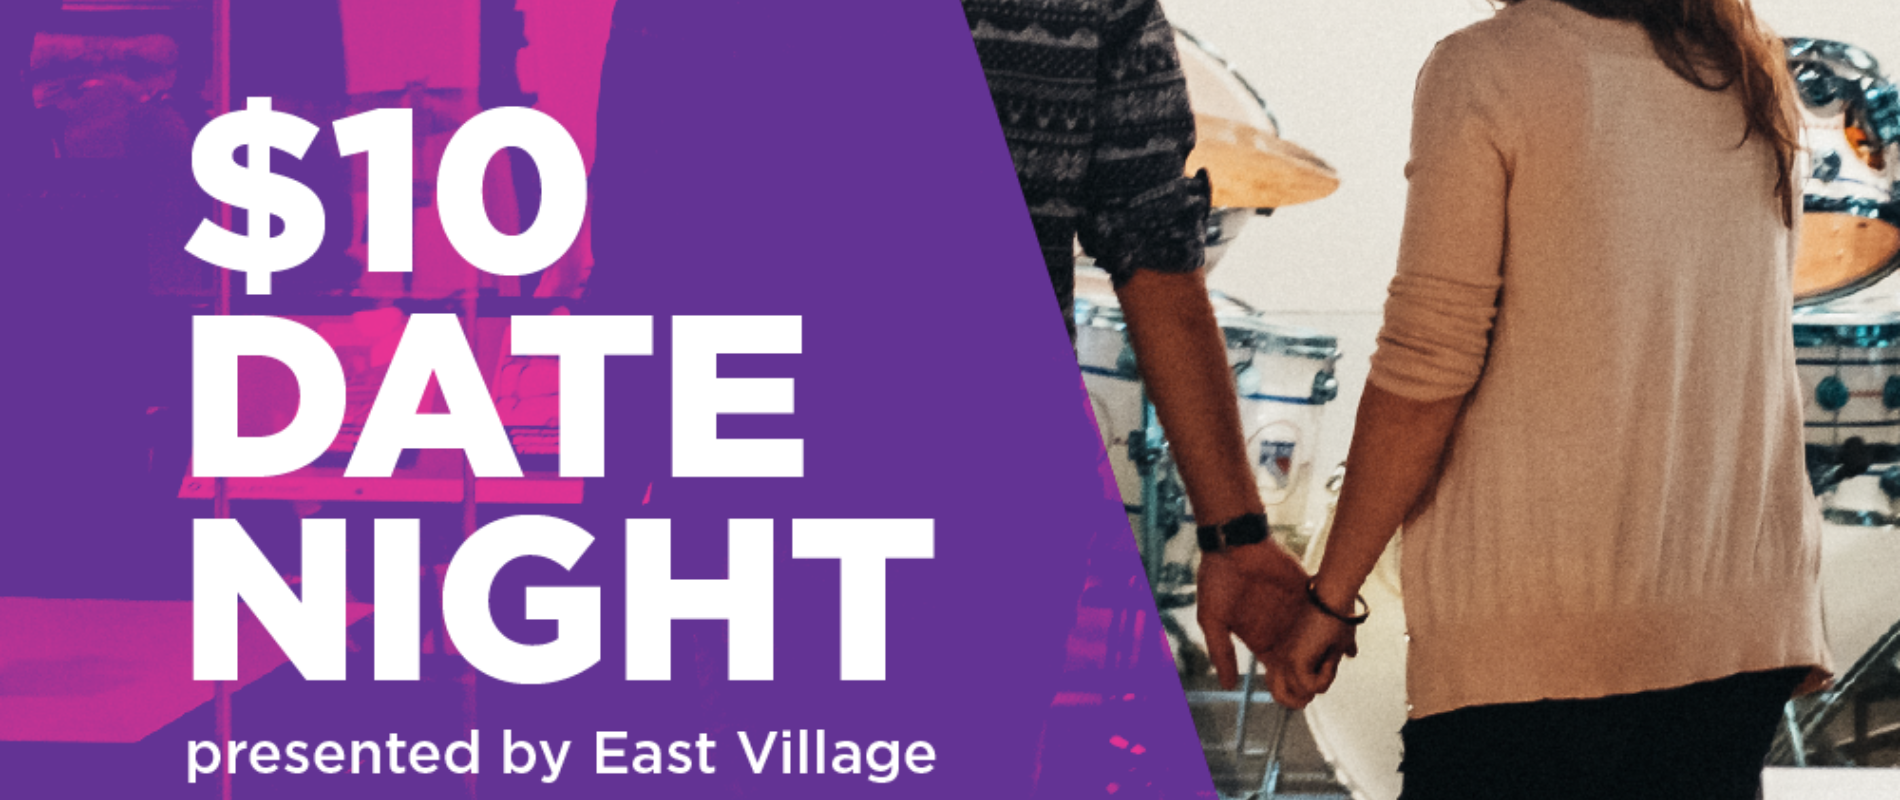 East Village presents: $10 Date Night at Studio Bell